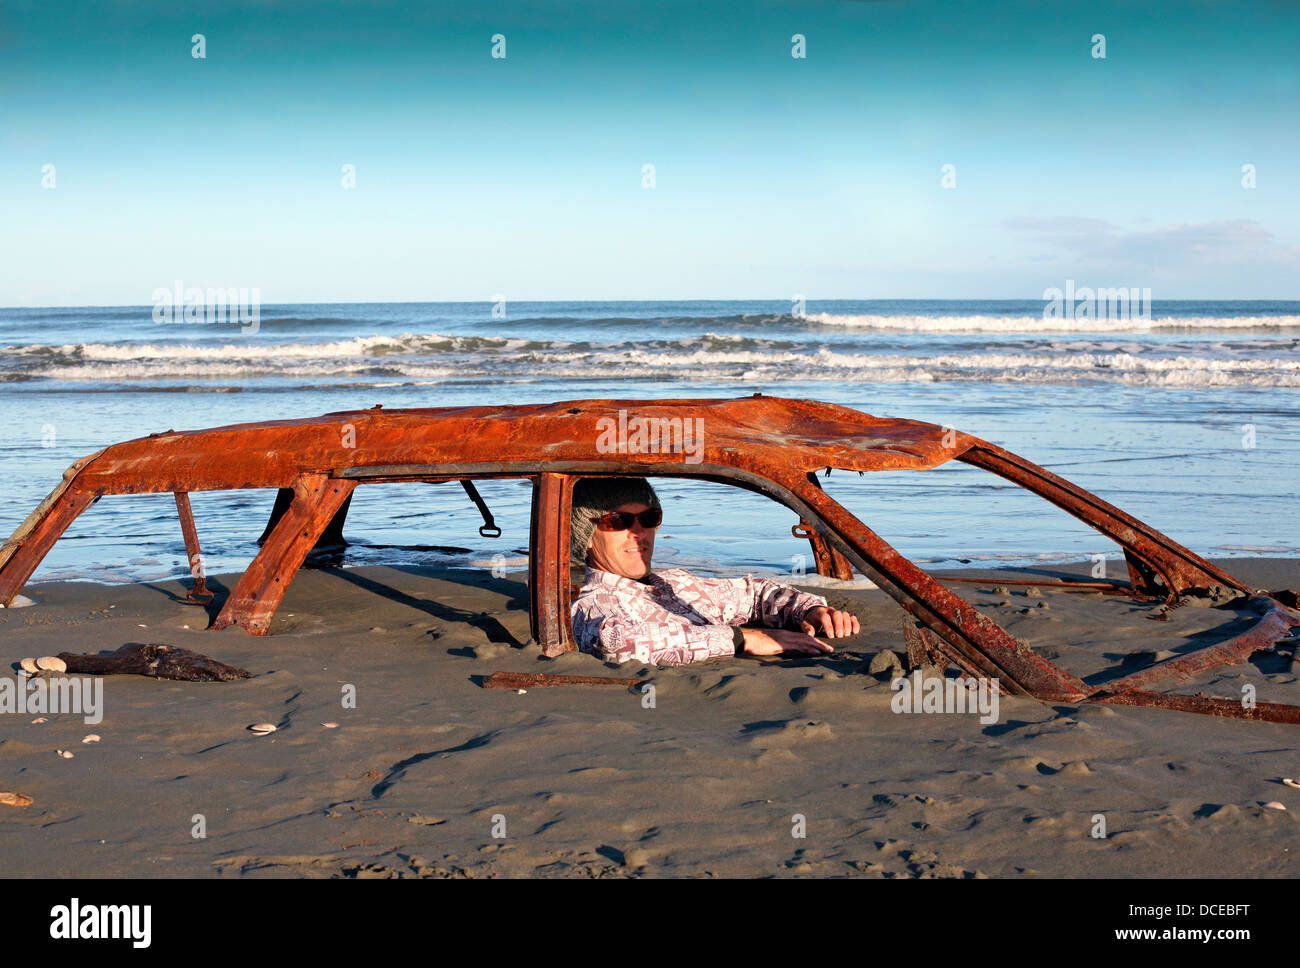 Man sits in rusted car wreck buried in sand on beach - Stock Image